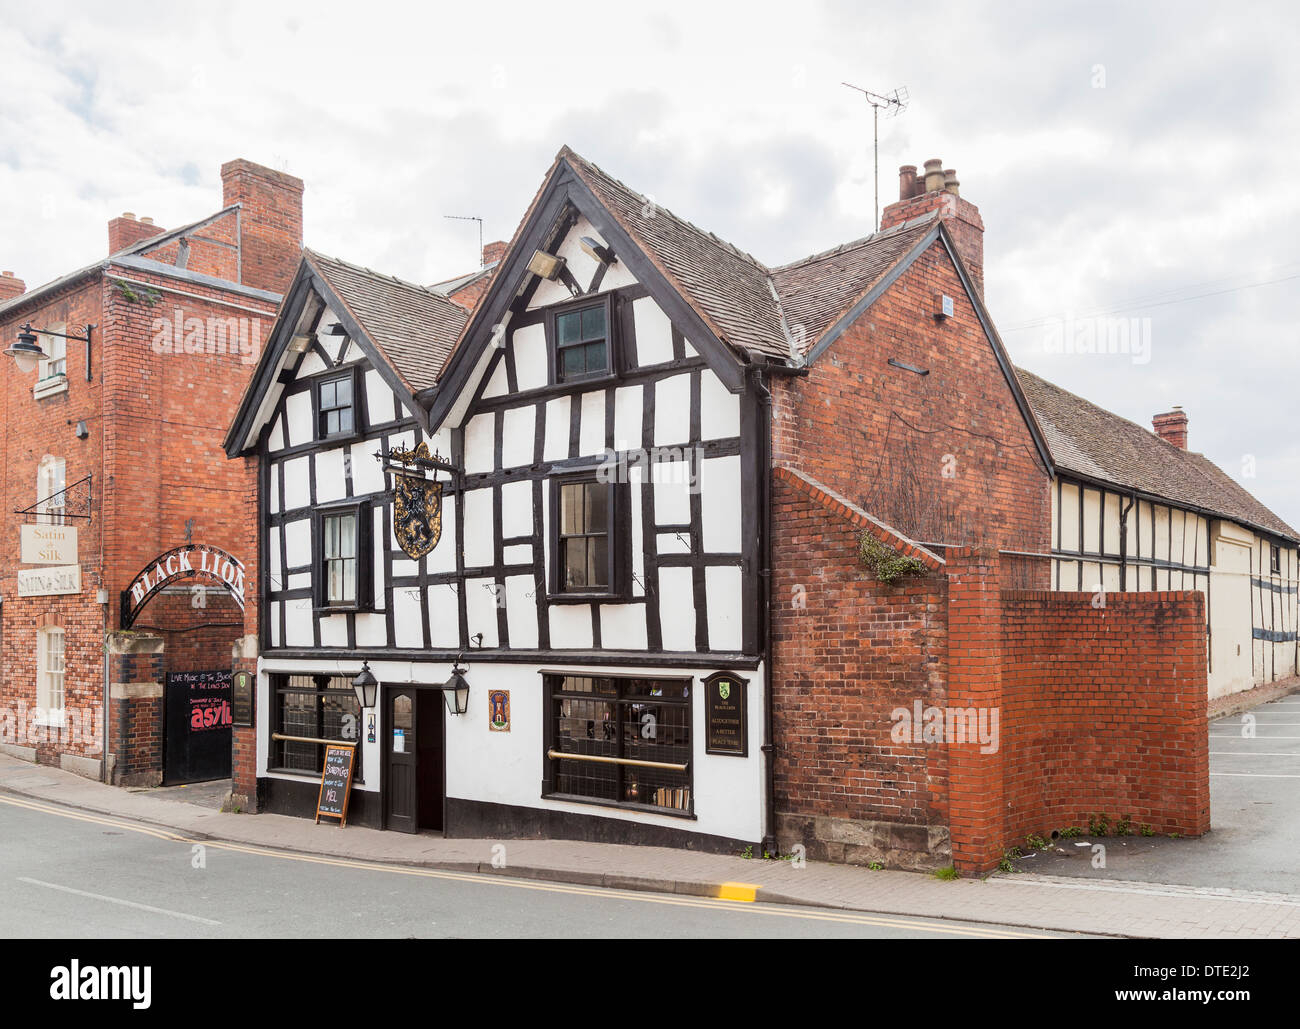 The Black Lion pub, a traditional historic timbered building in Hereford, UK - Stock Image